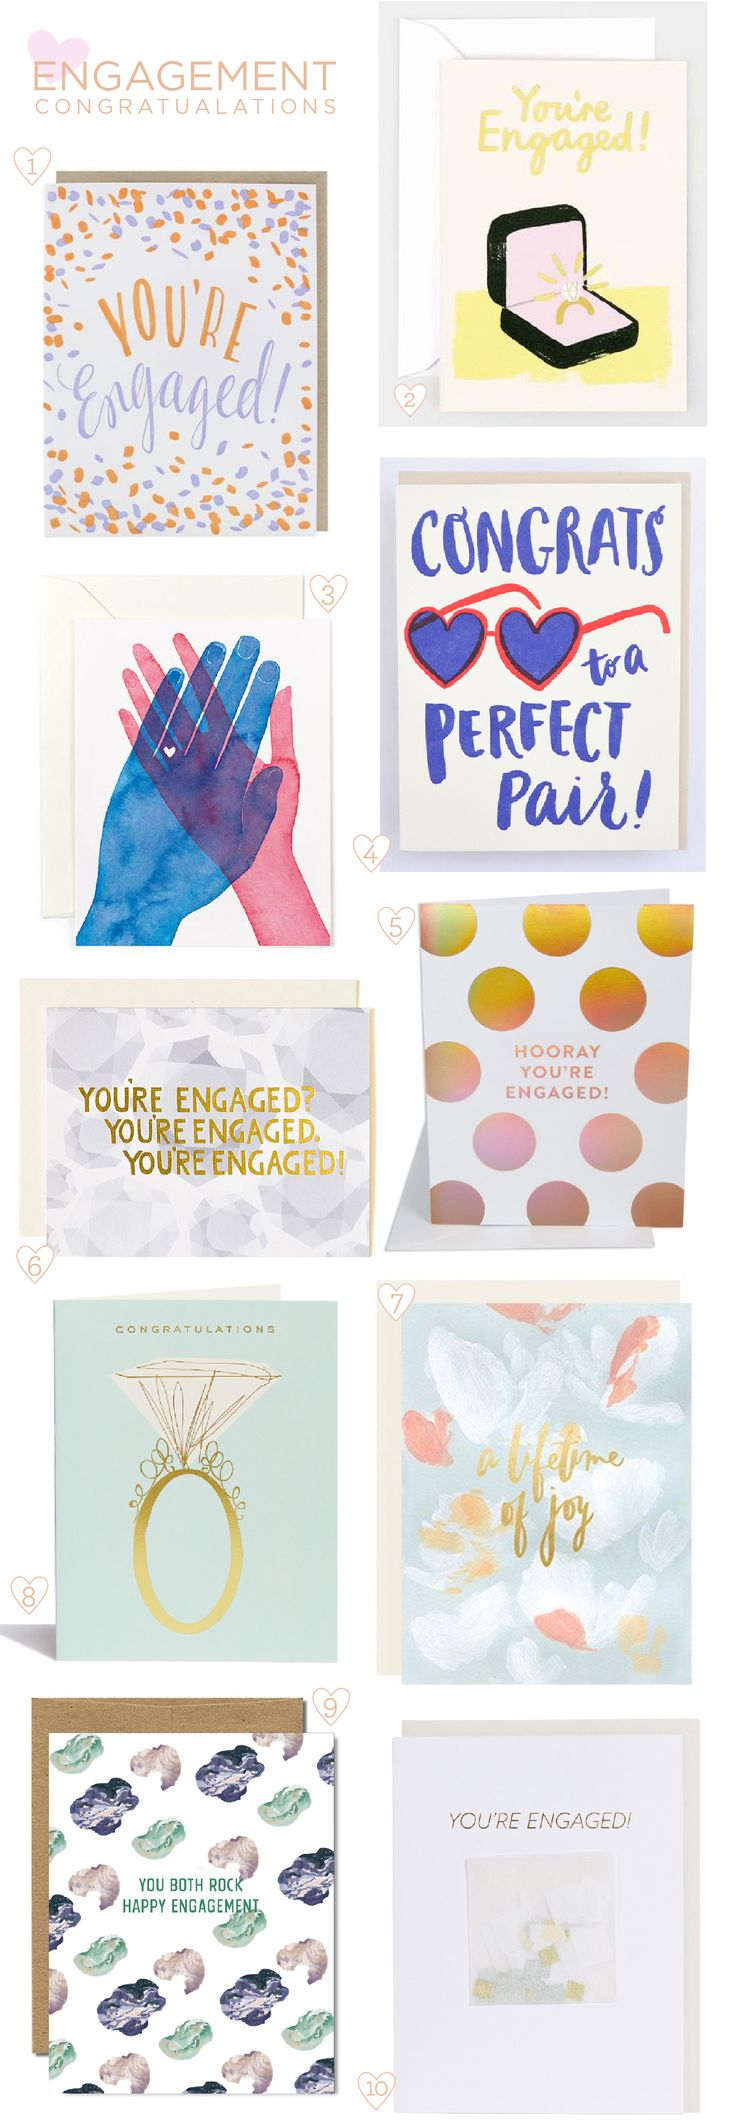 Engagement Congratulations Card Round Up